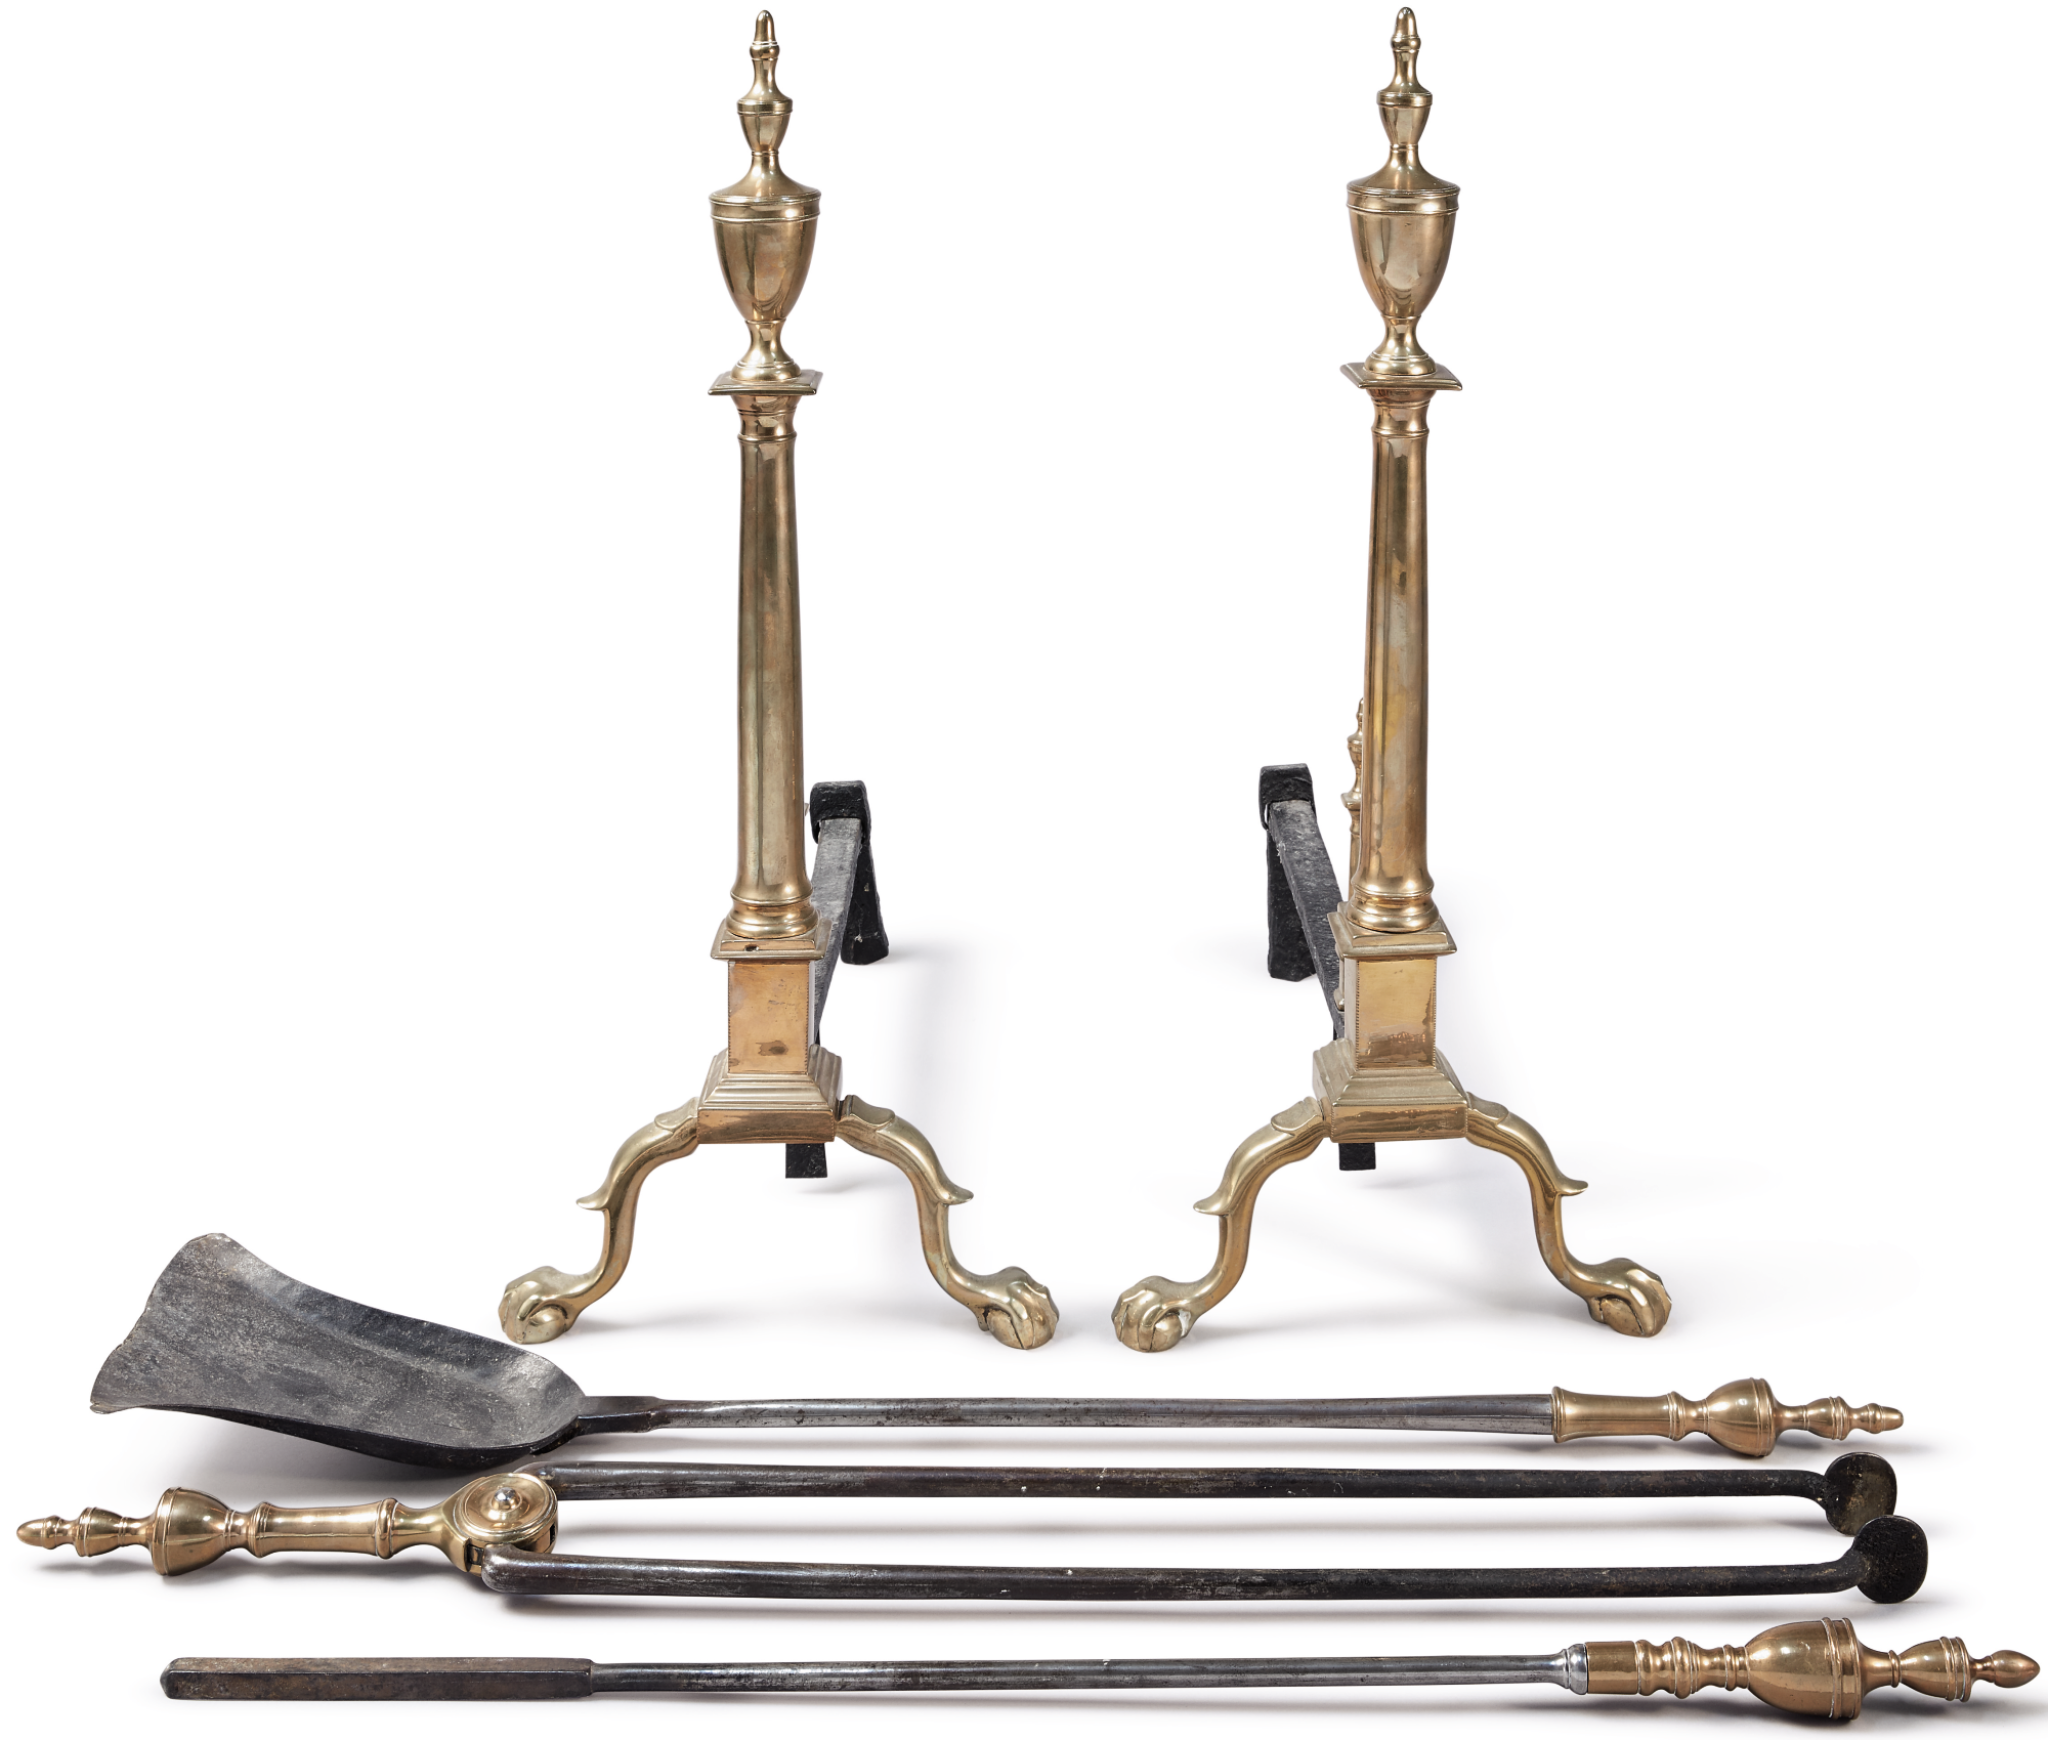 View 1 of Lot 1206. PAIR OF CHIPPENDALE CAST BELL-METAL AND WROUGHT IRON ANDIRONS AND ACCOMPANYING FIRE TOOLS, PHILADELPHIA, CIRCA 1790.